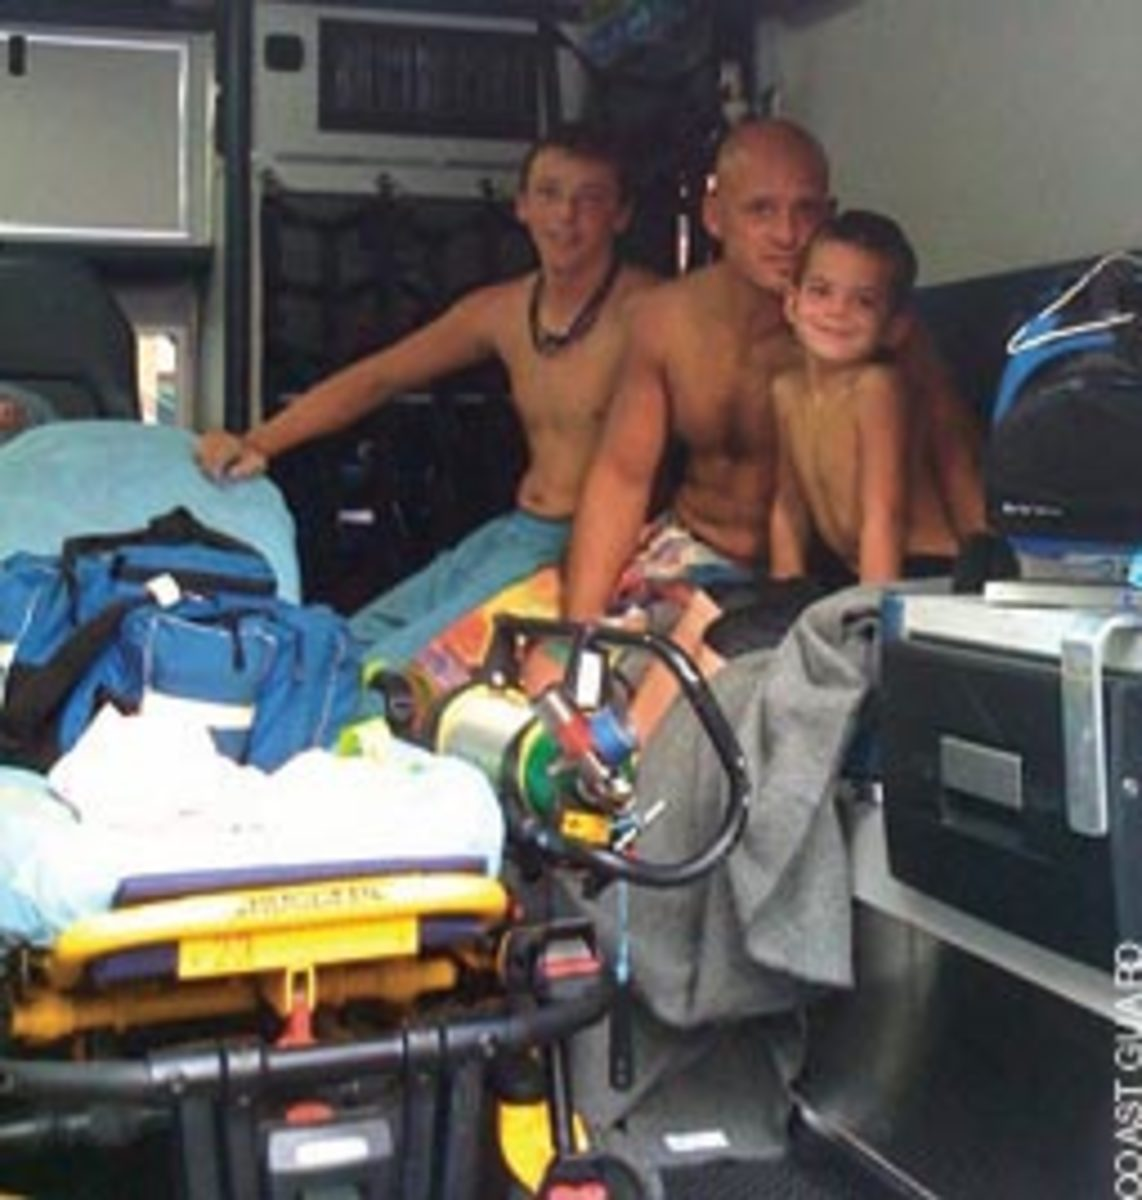 Wearing PFDs and staying together near the boat helped save the anglers. Shown here are (from left) Tyler Willimon, Jody Gouge and his son Xander.